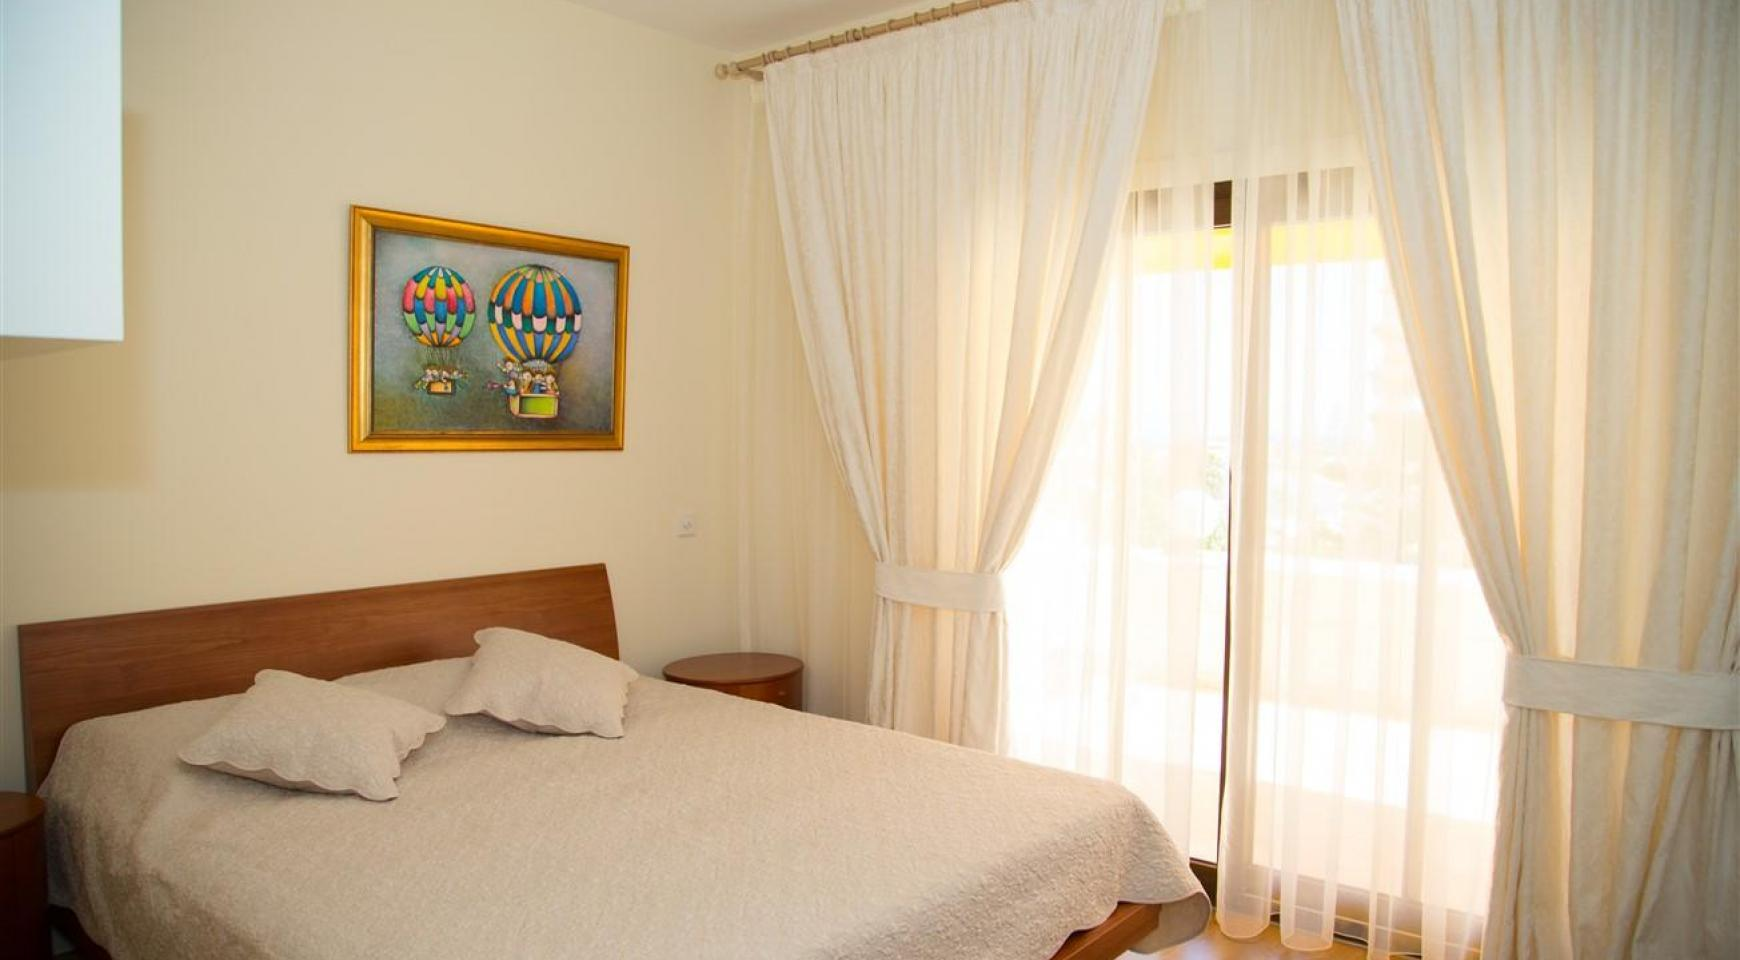 Cozy and Spacious 3 Bedroom Apartment Thera 102 by the Sea - 15